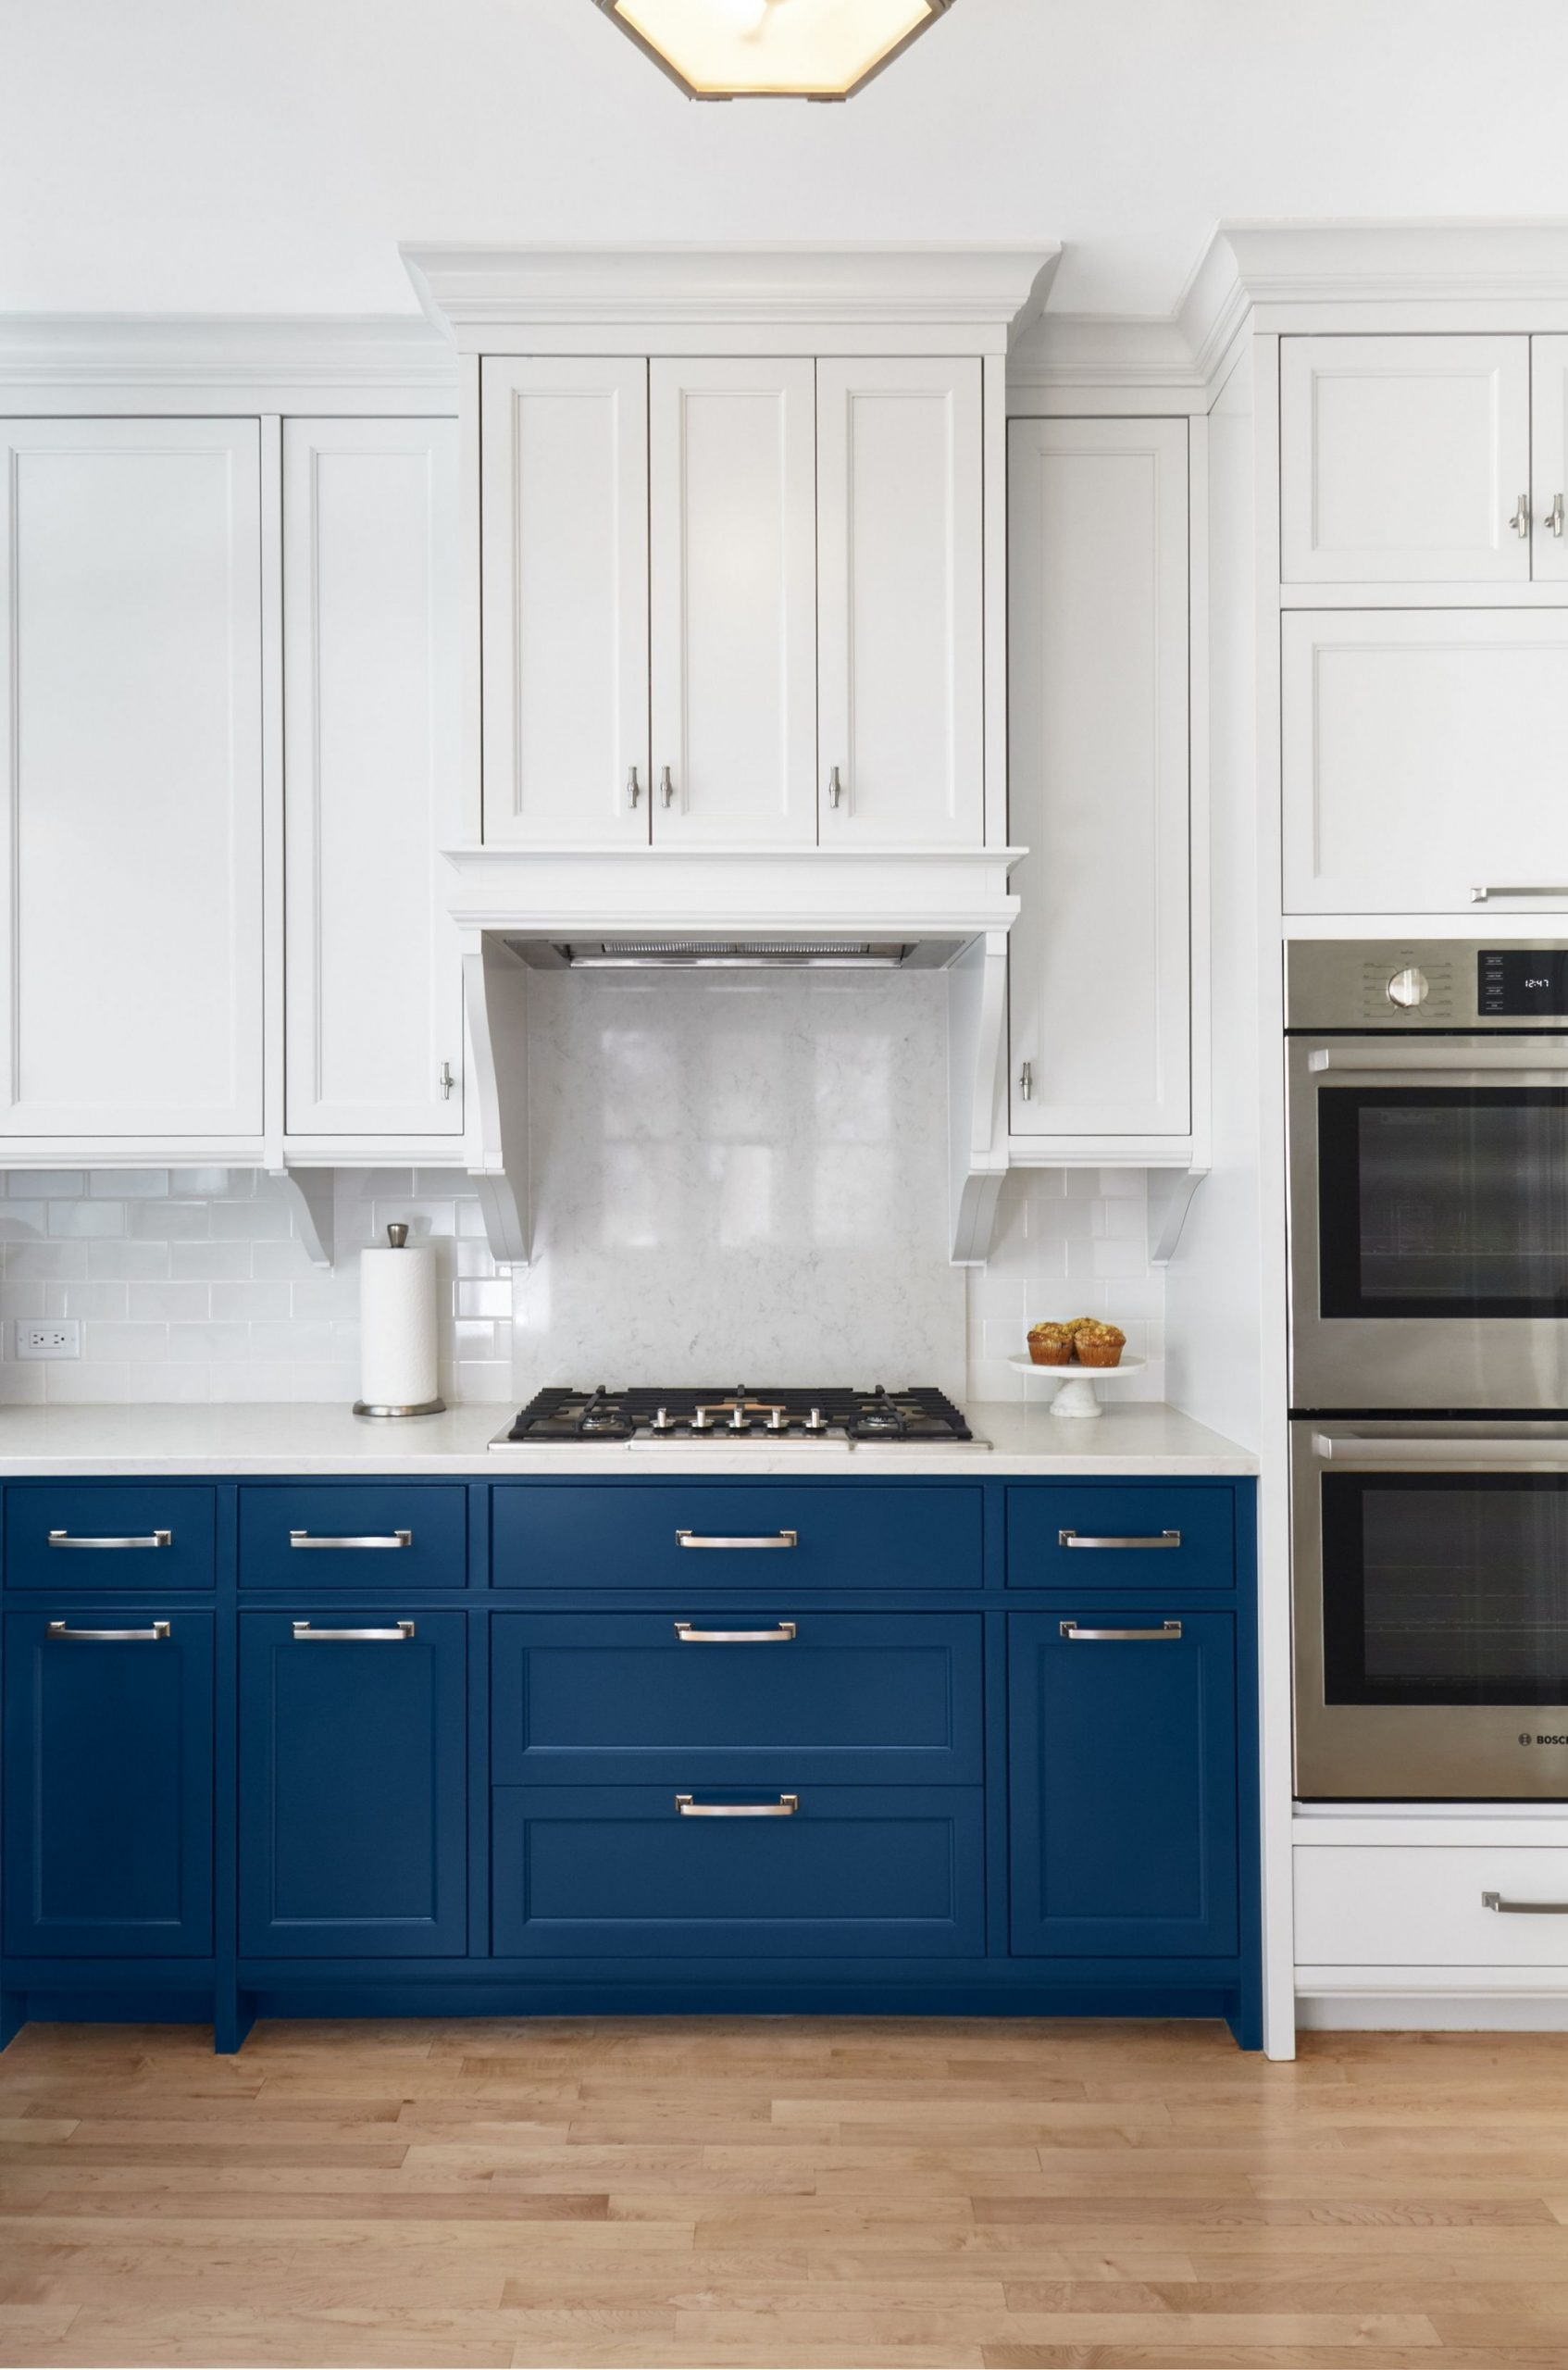 Two-Tone Kitchen Cabinet Ideas - How Use 9 Colors in Kitchen Cabinets - Kitchen Designs With White Upper Cabinets And Dark Lower Cabinets